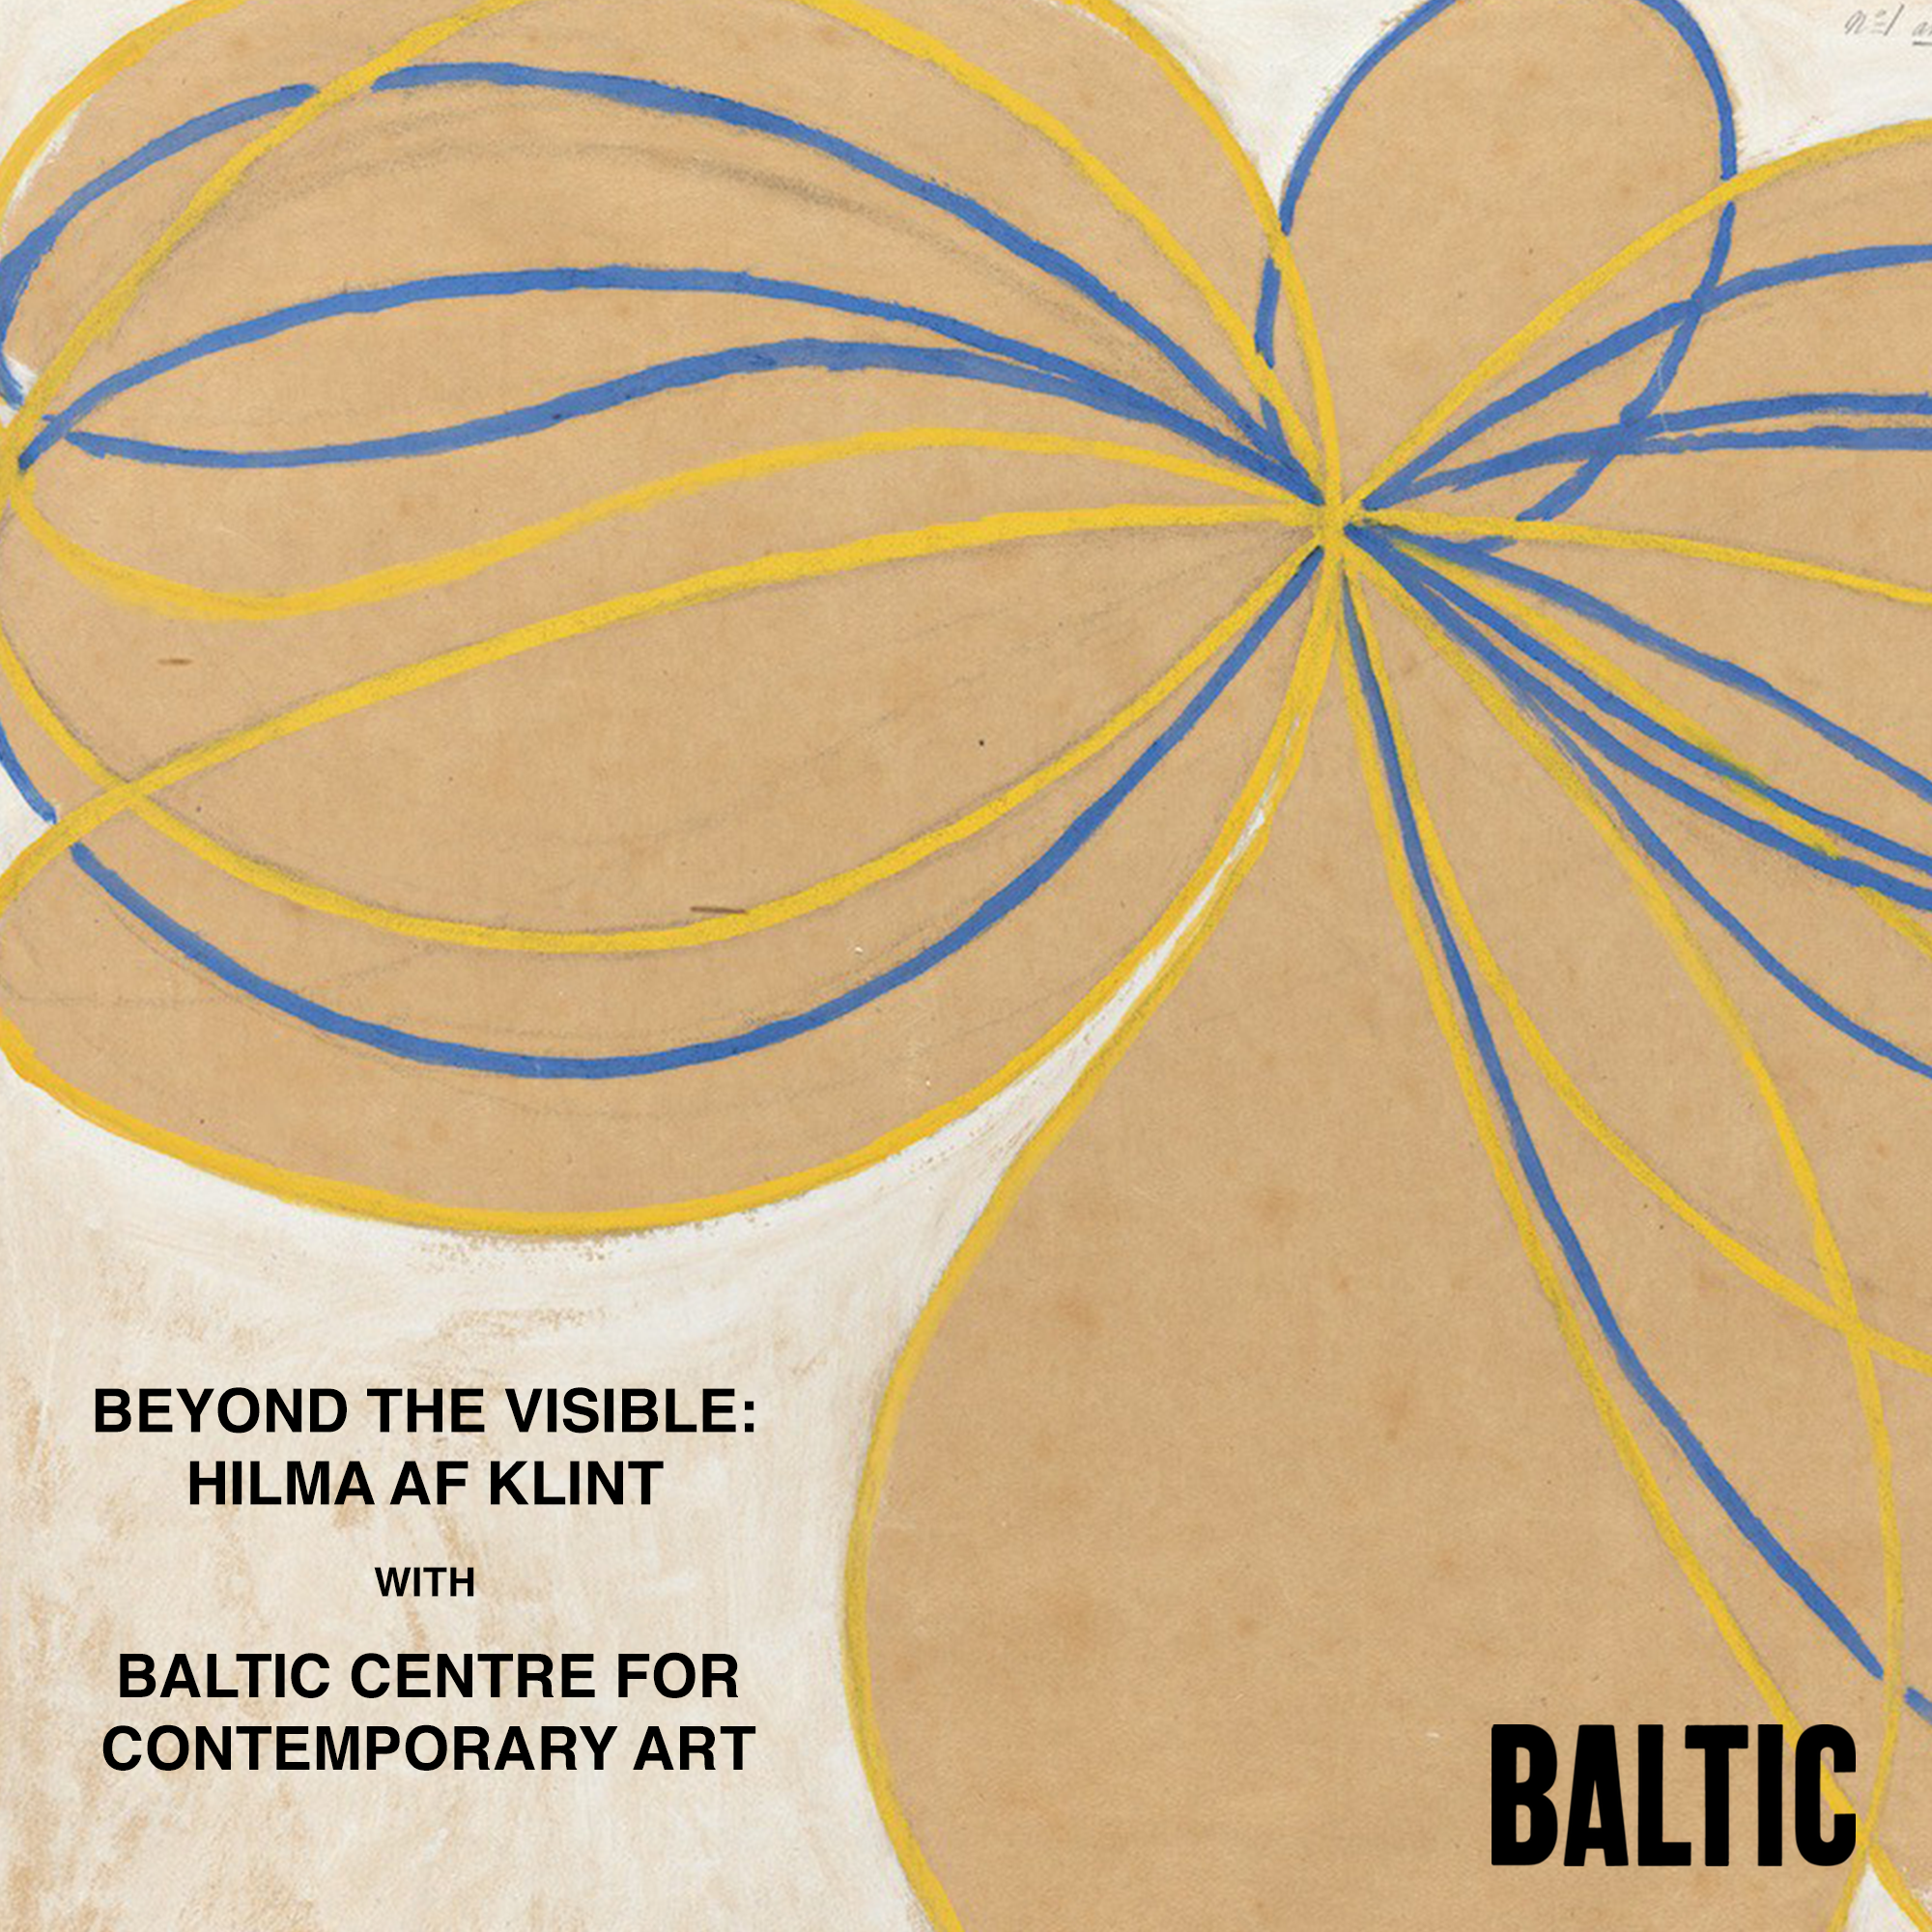 Beyond the Visible: Hilma af Klint with Baltic Centre for Contemporary Art